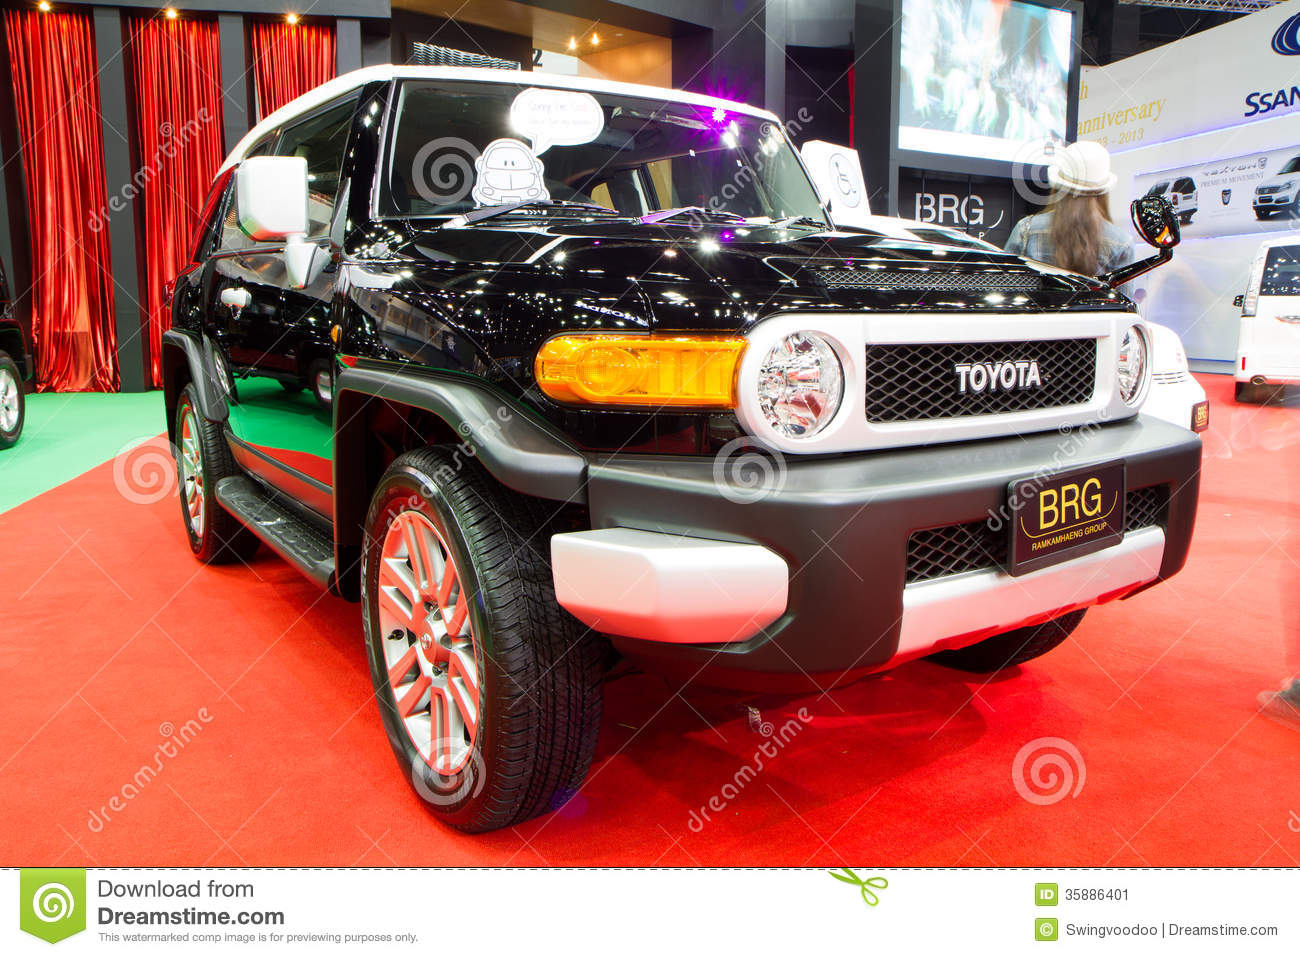 toyota fj cruiser 4x4 car on thailand international motor expo editorial photo image 35886401. Black Bedroom Furniture Sets. Home Design Ideas